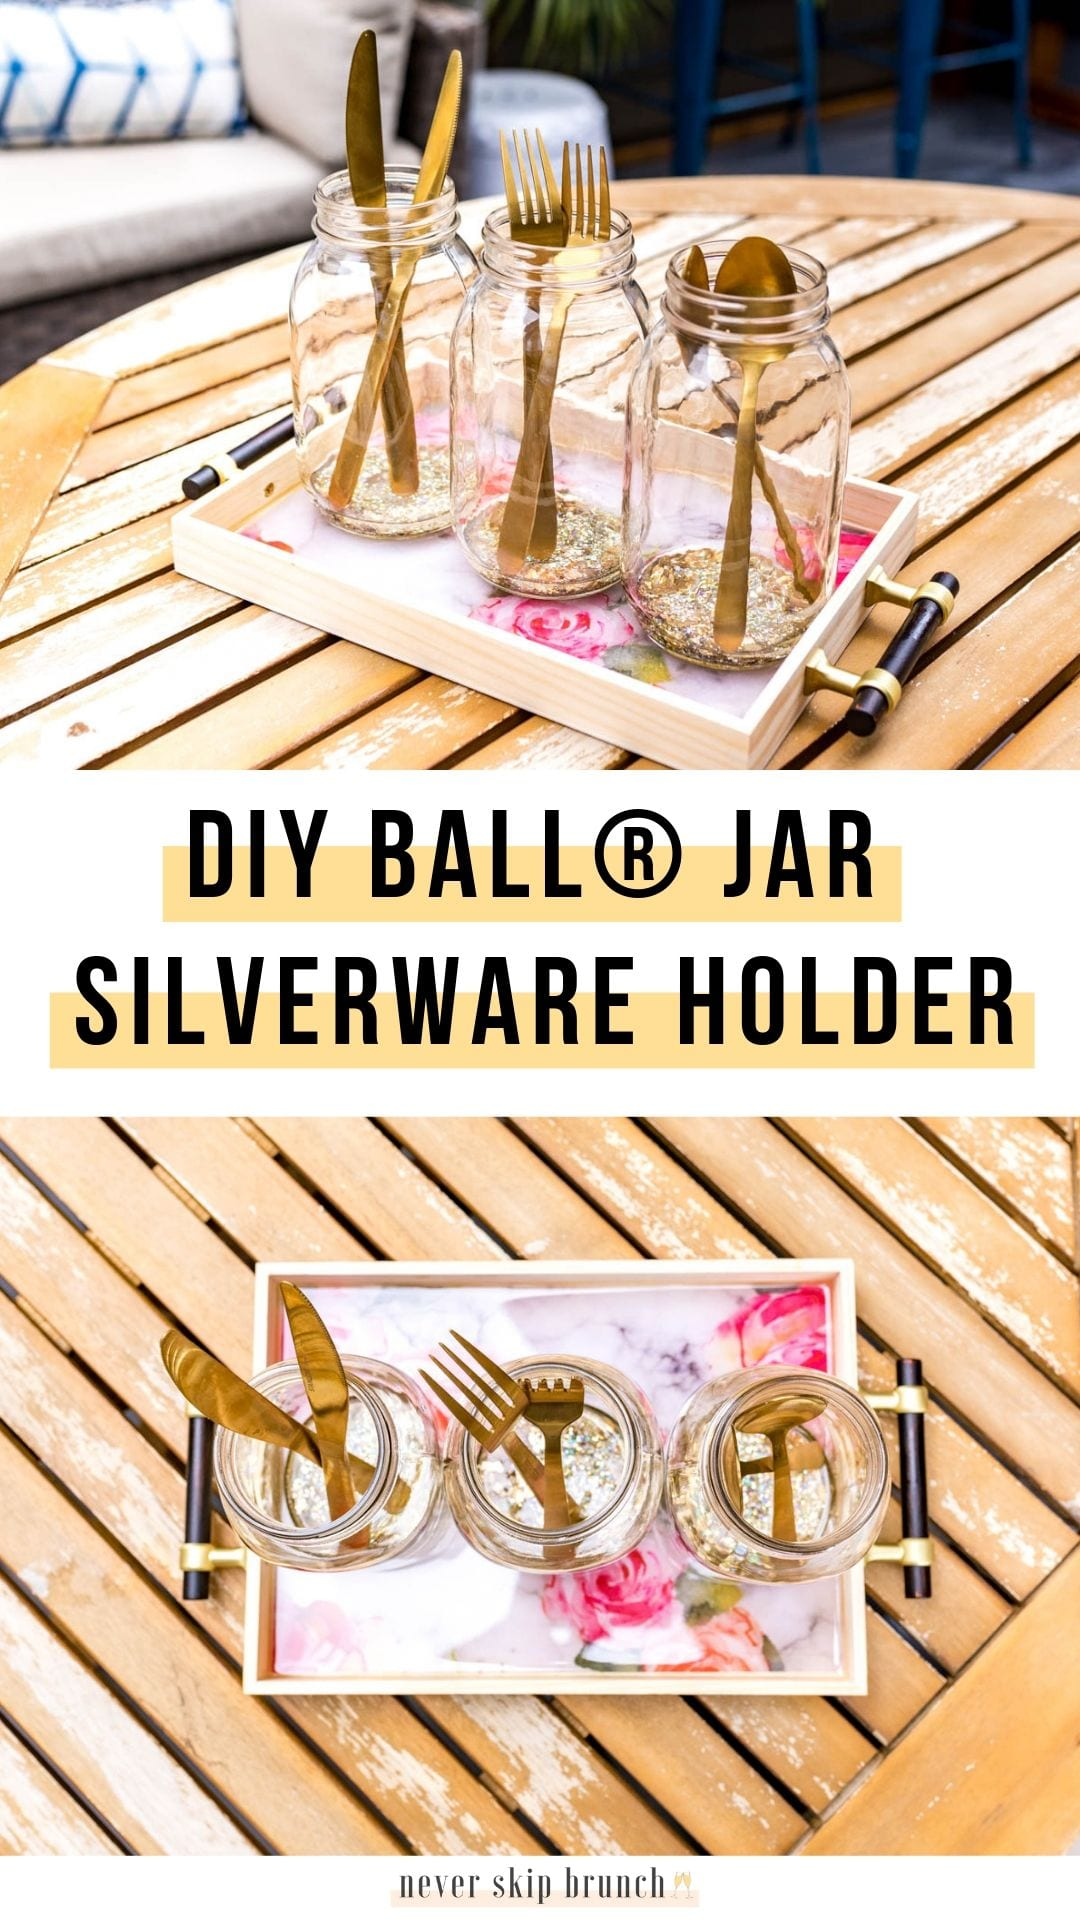 Chic Mason Jar Craft Idea — a silverware holder tray | mason jar crafts | mason jar ideas | patio decor | silverware holder DIY | mason jar silverware holder | mason jar silverware holder for party | mason jar silverware holder for wedding